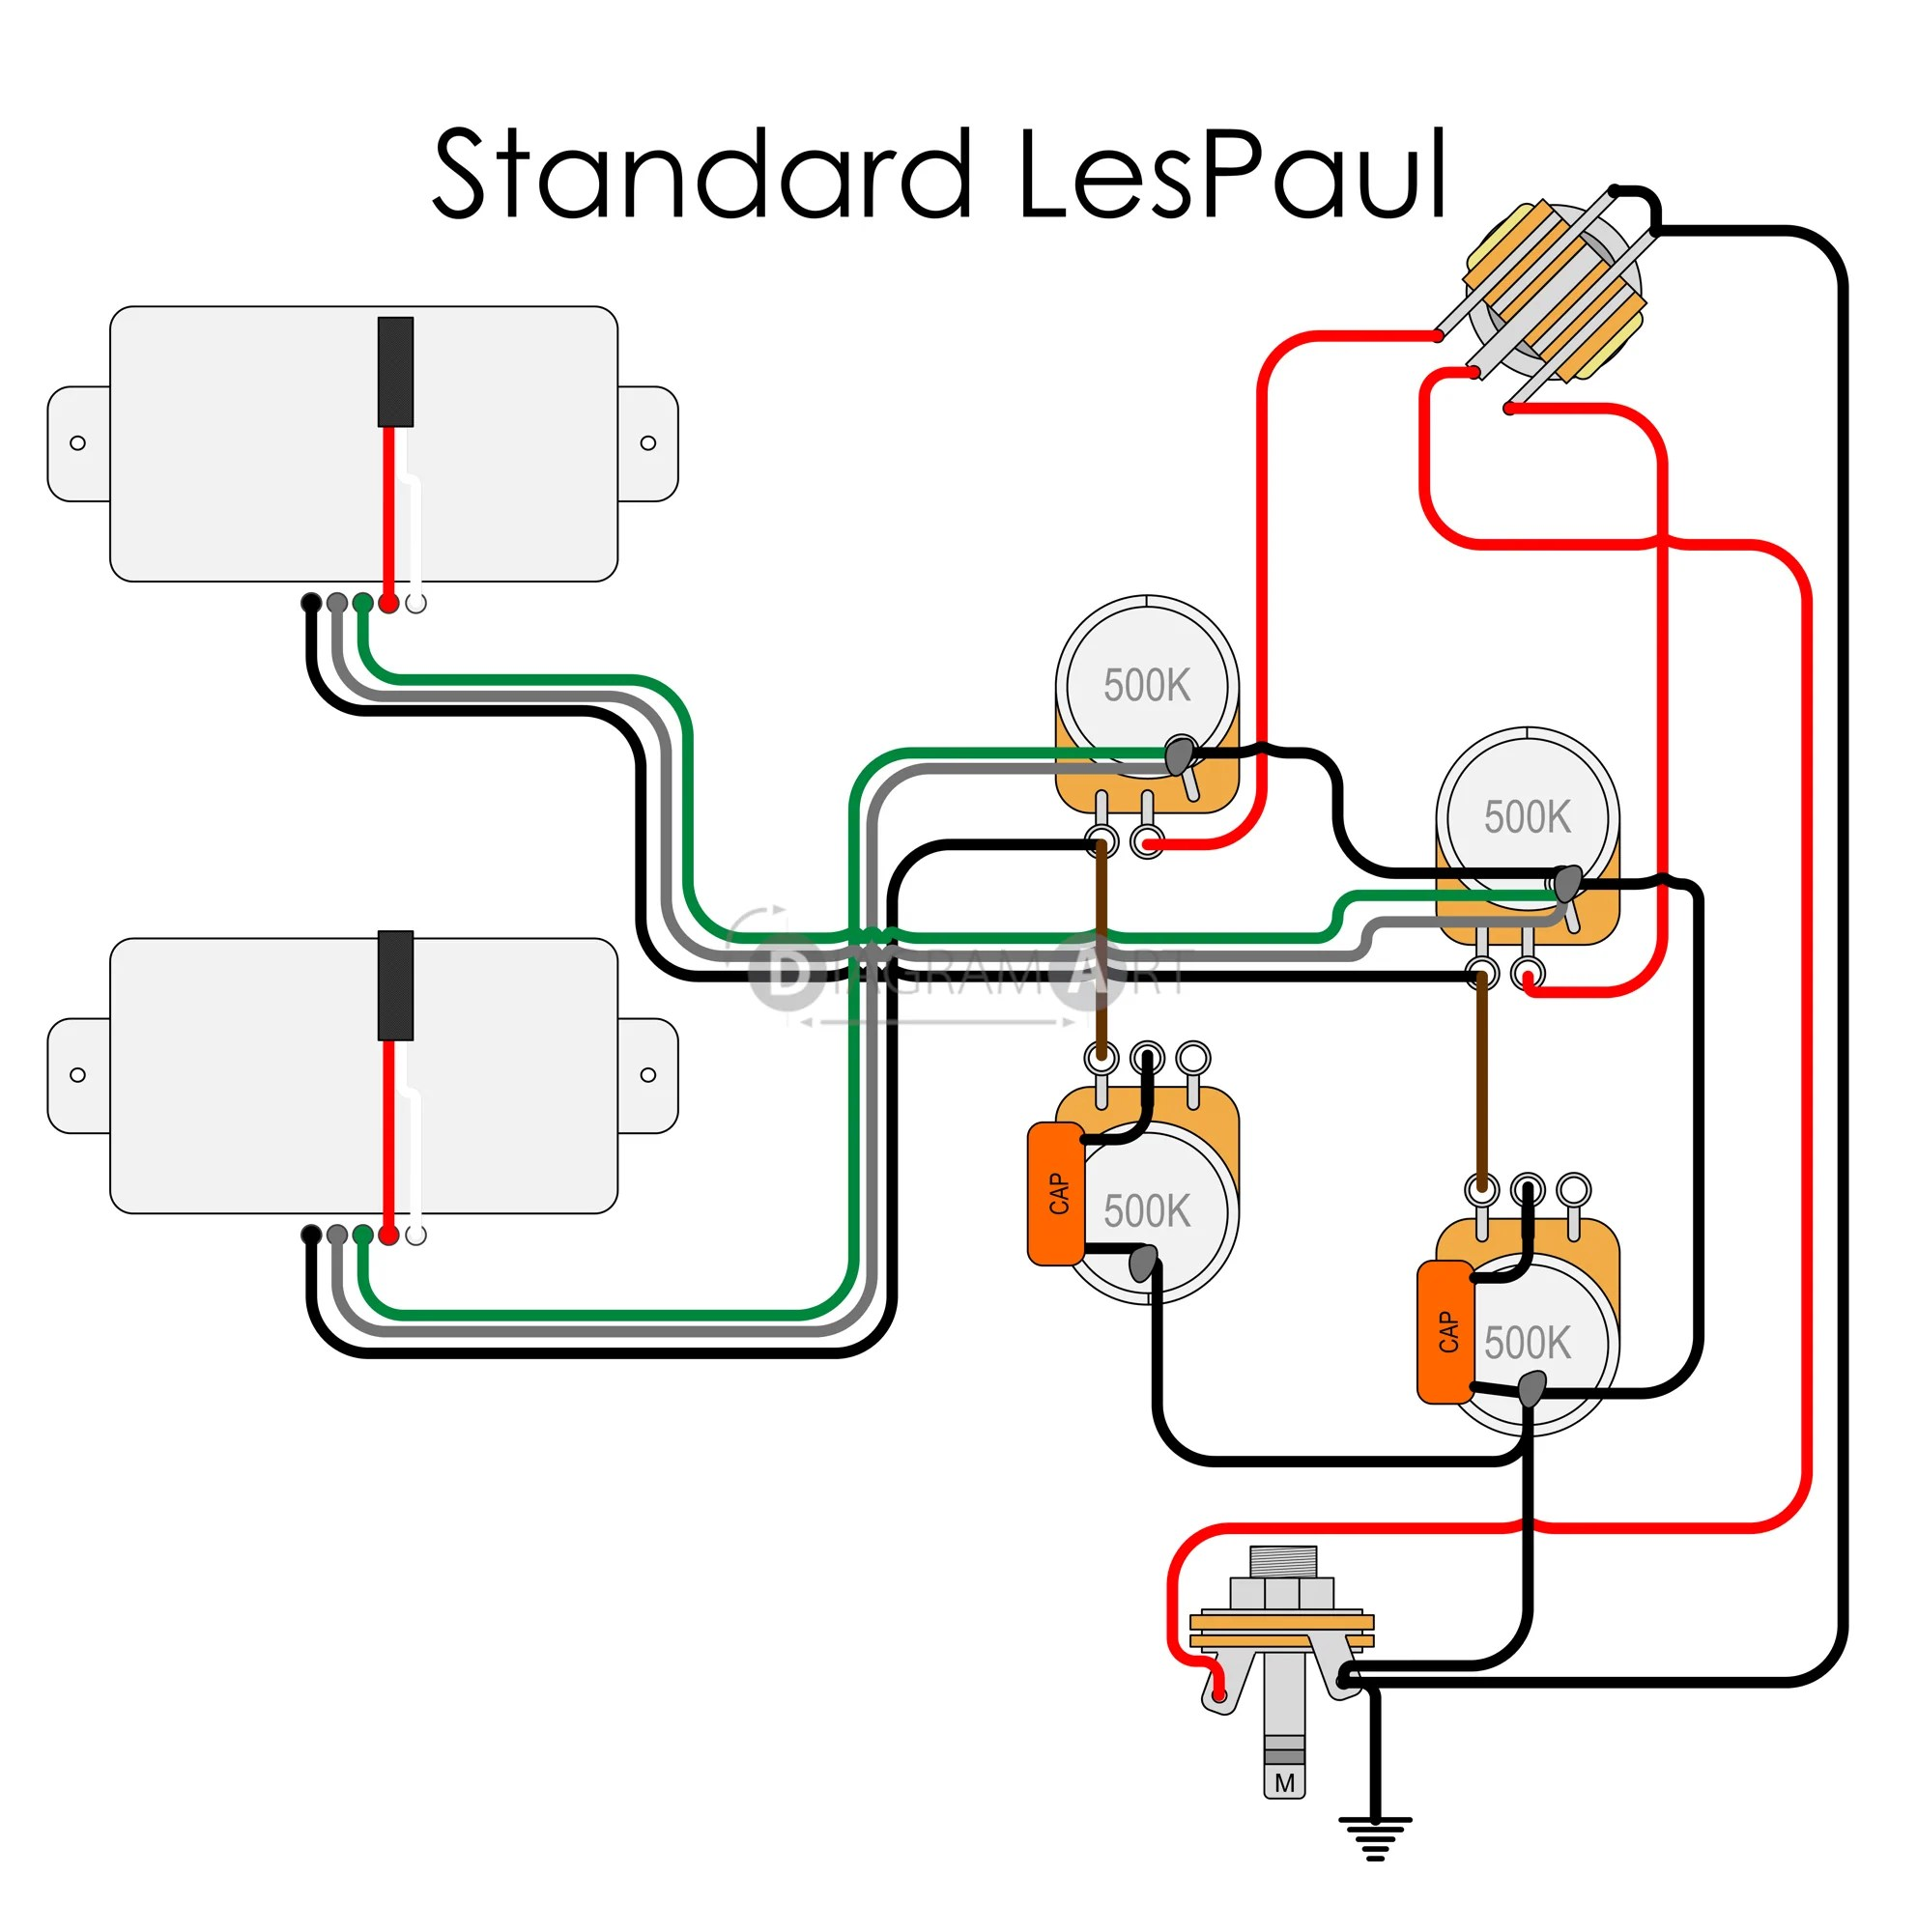 standard les paul wiring diagram wiring diagram expert les paul wiring diagram les paul pro wiring diagram [ 1984 x 2000 Pixel ]